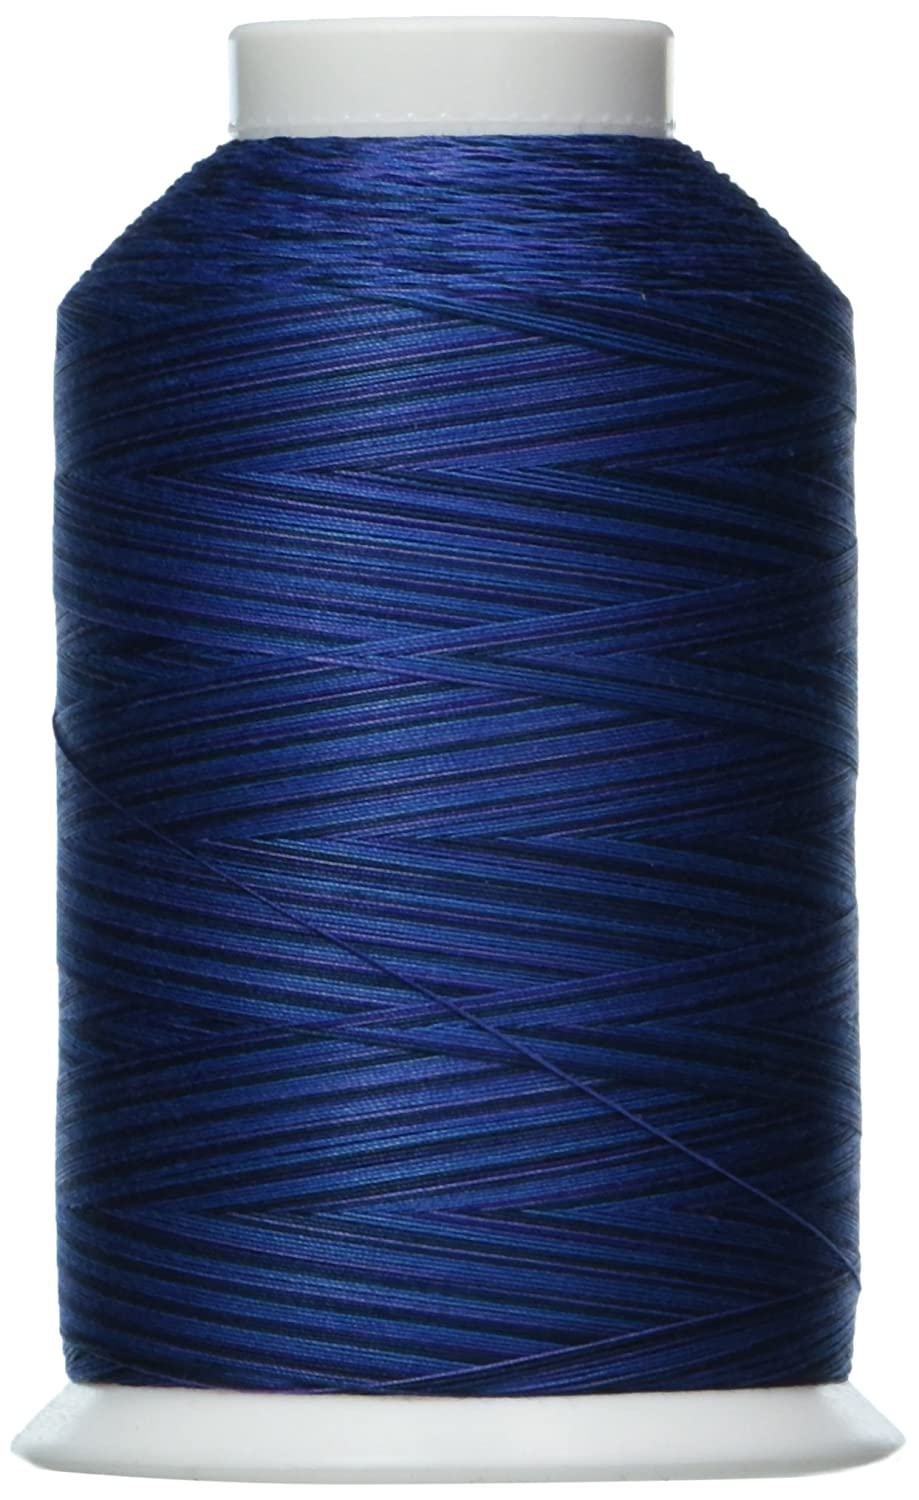 Nordic Fjord 3000 yd YLI 24430V85 3-Ply Machine Cotton Quilting Variegated Thread